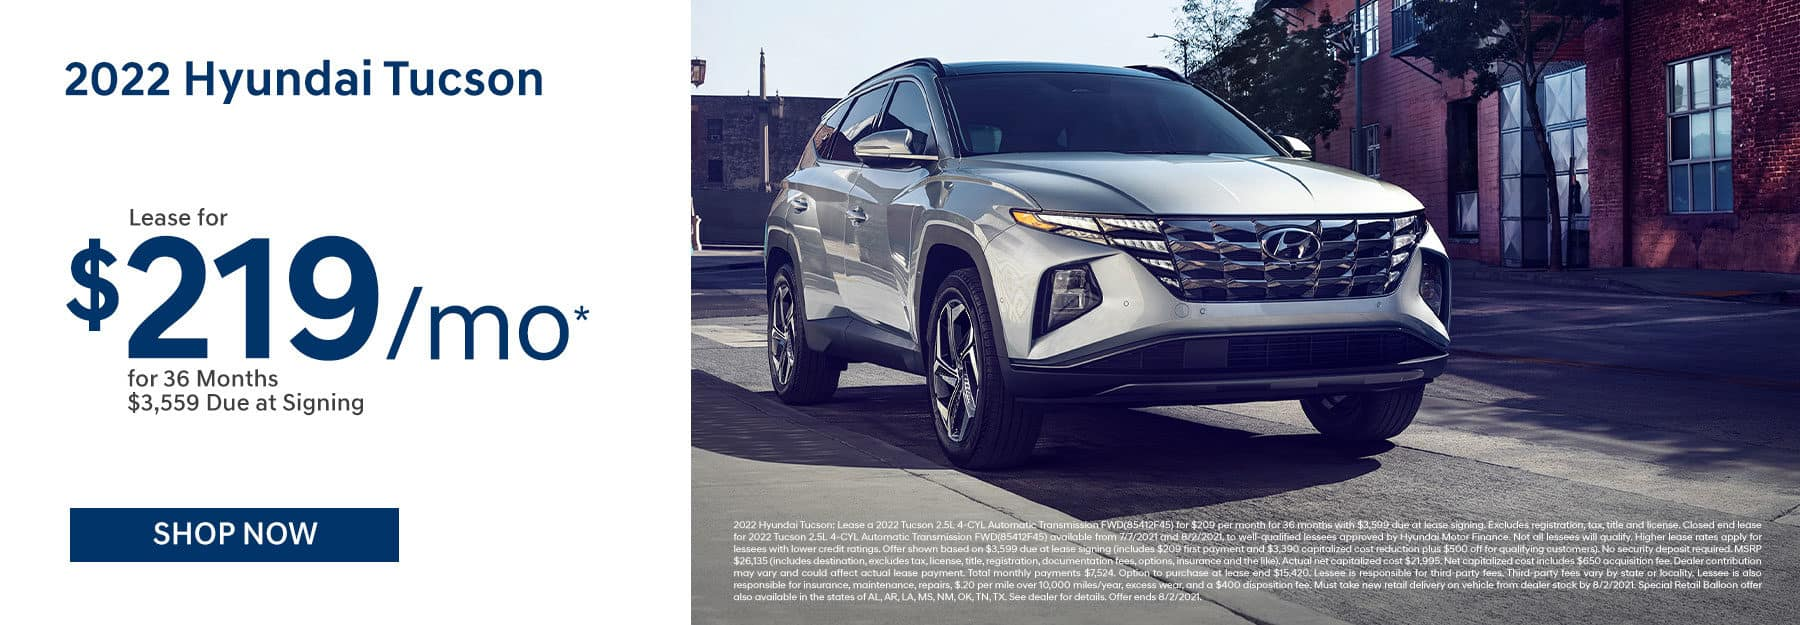 2022 Hyundai Tucson For Sale In Greenville